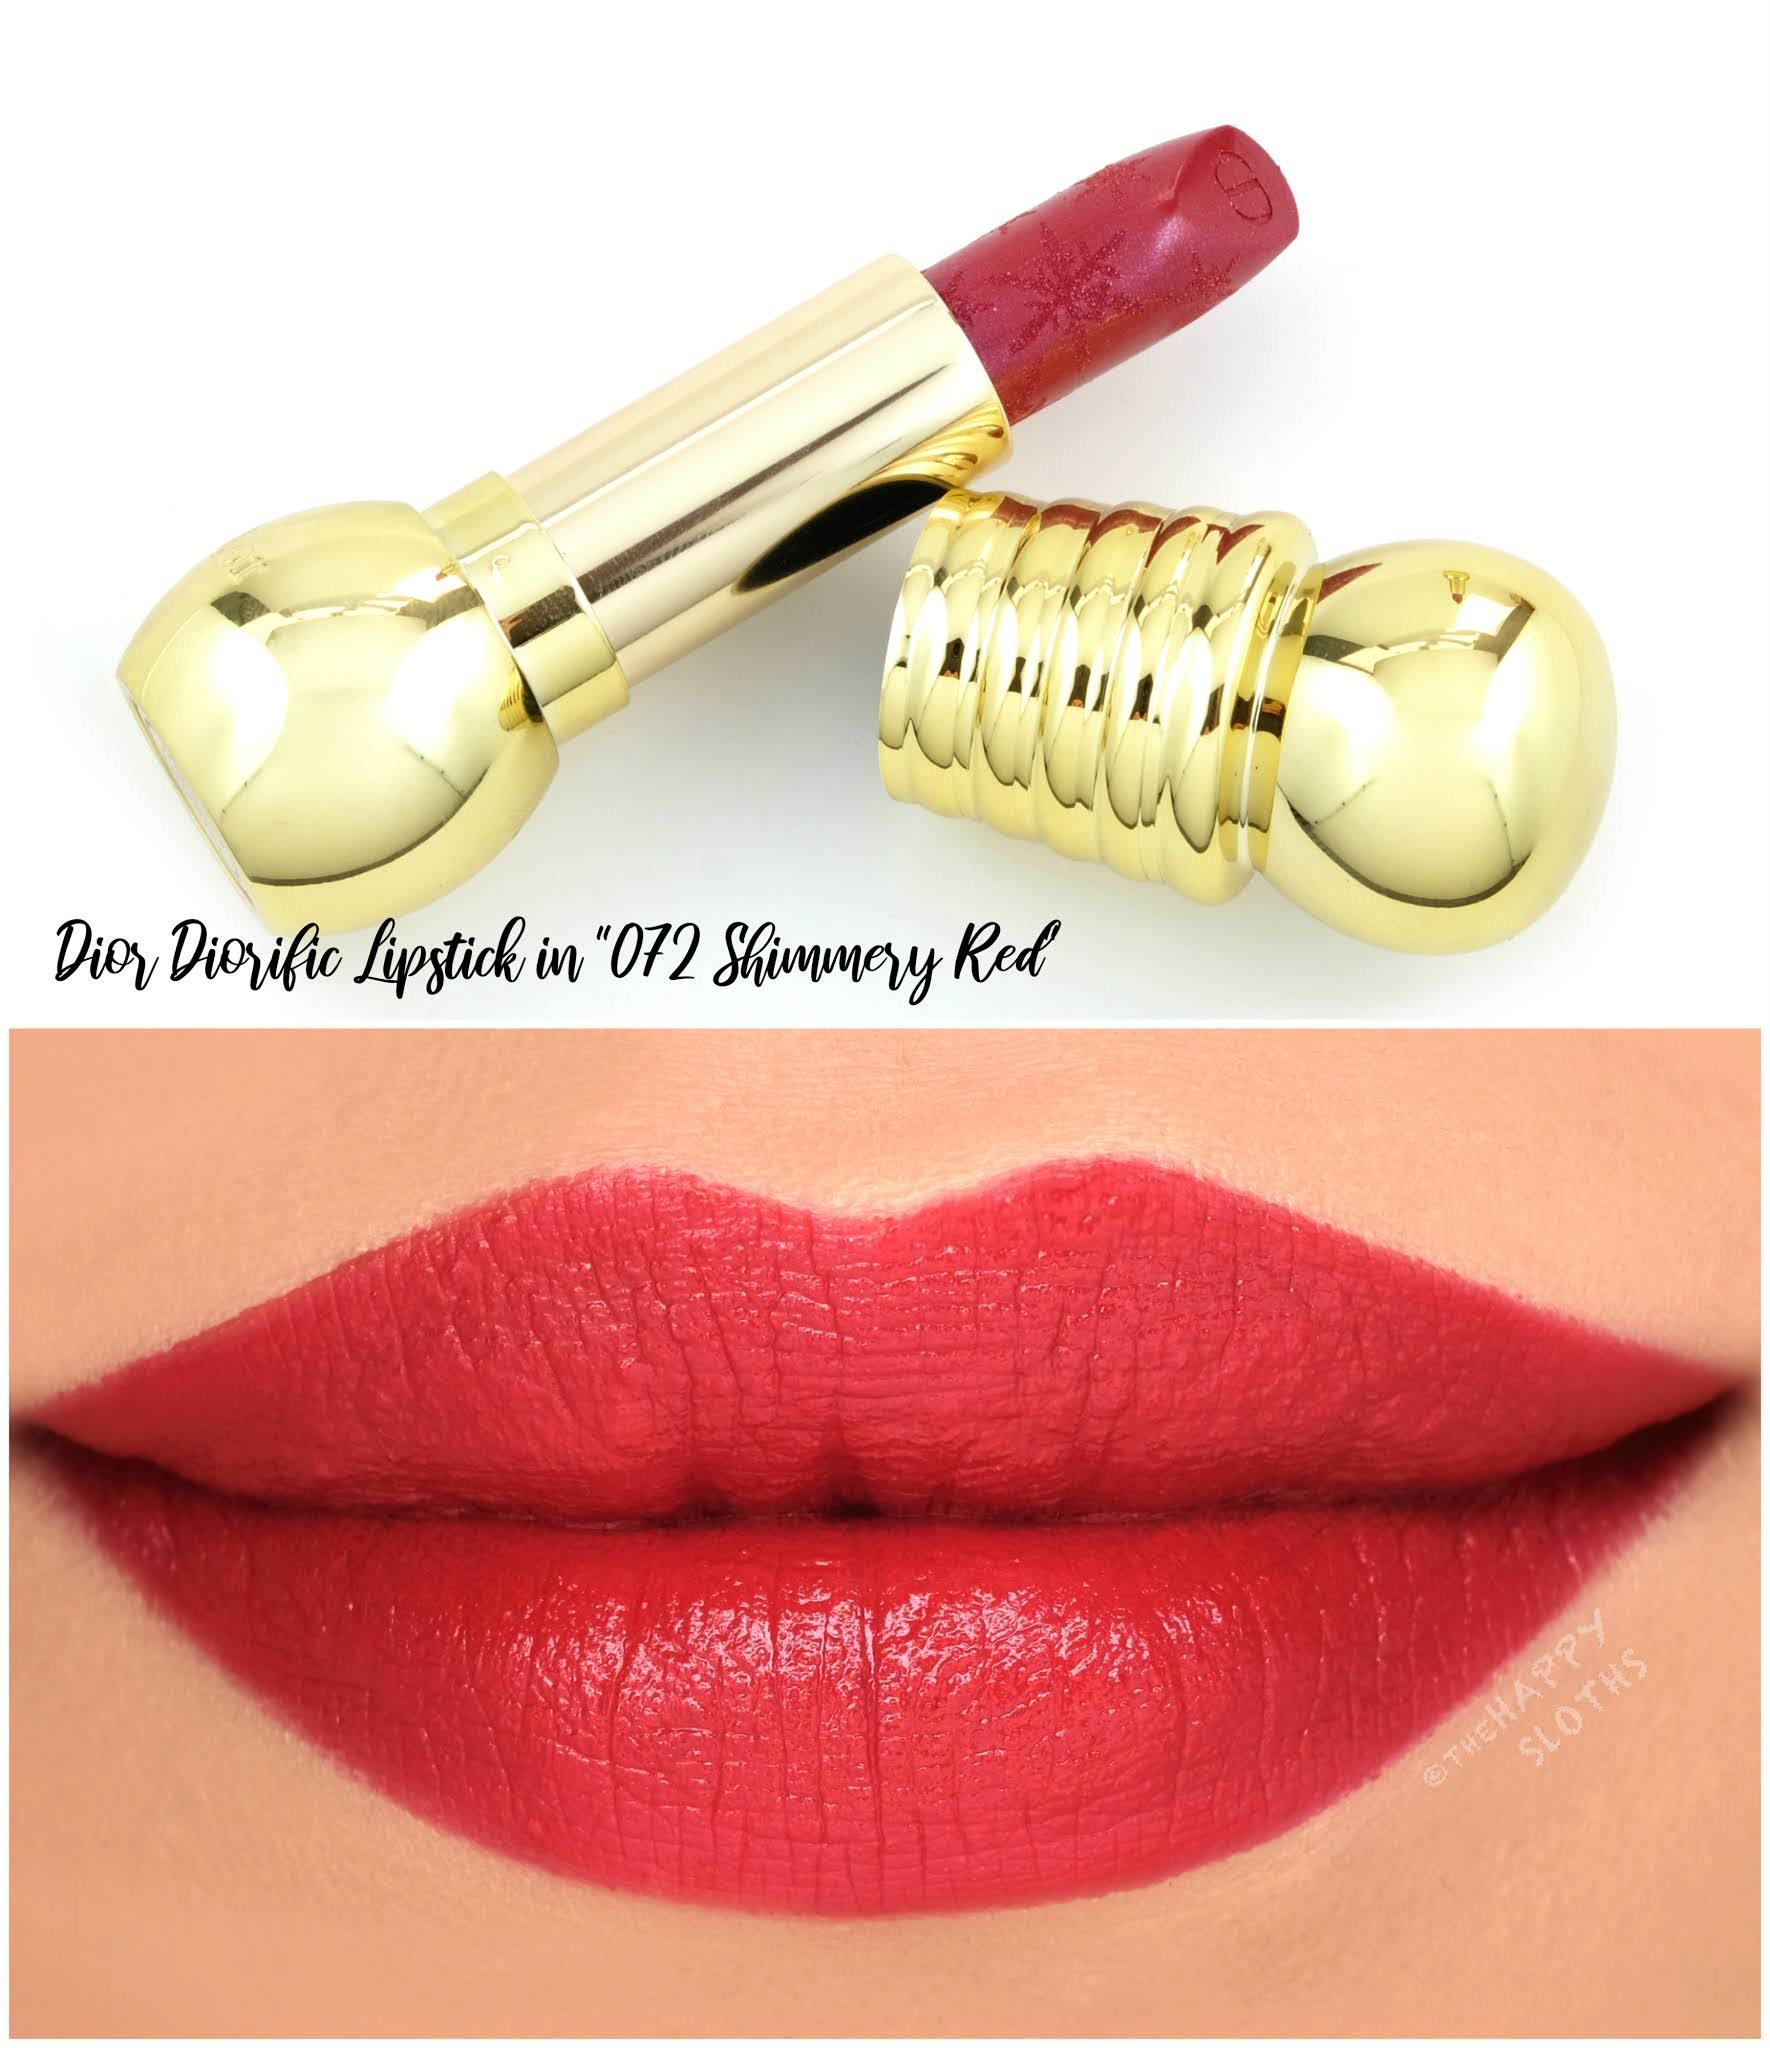 "Dior Holiday 2020 | Diorific Golden Nights Lipstick in ""072 Shimmery Red"": Review and Swatches"